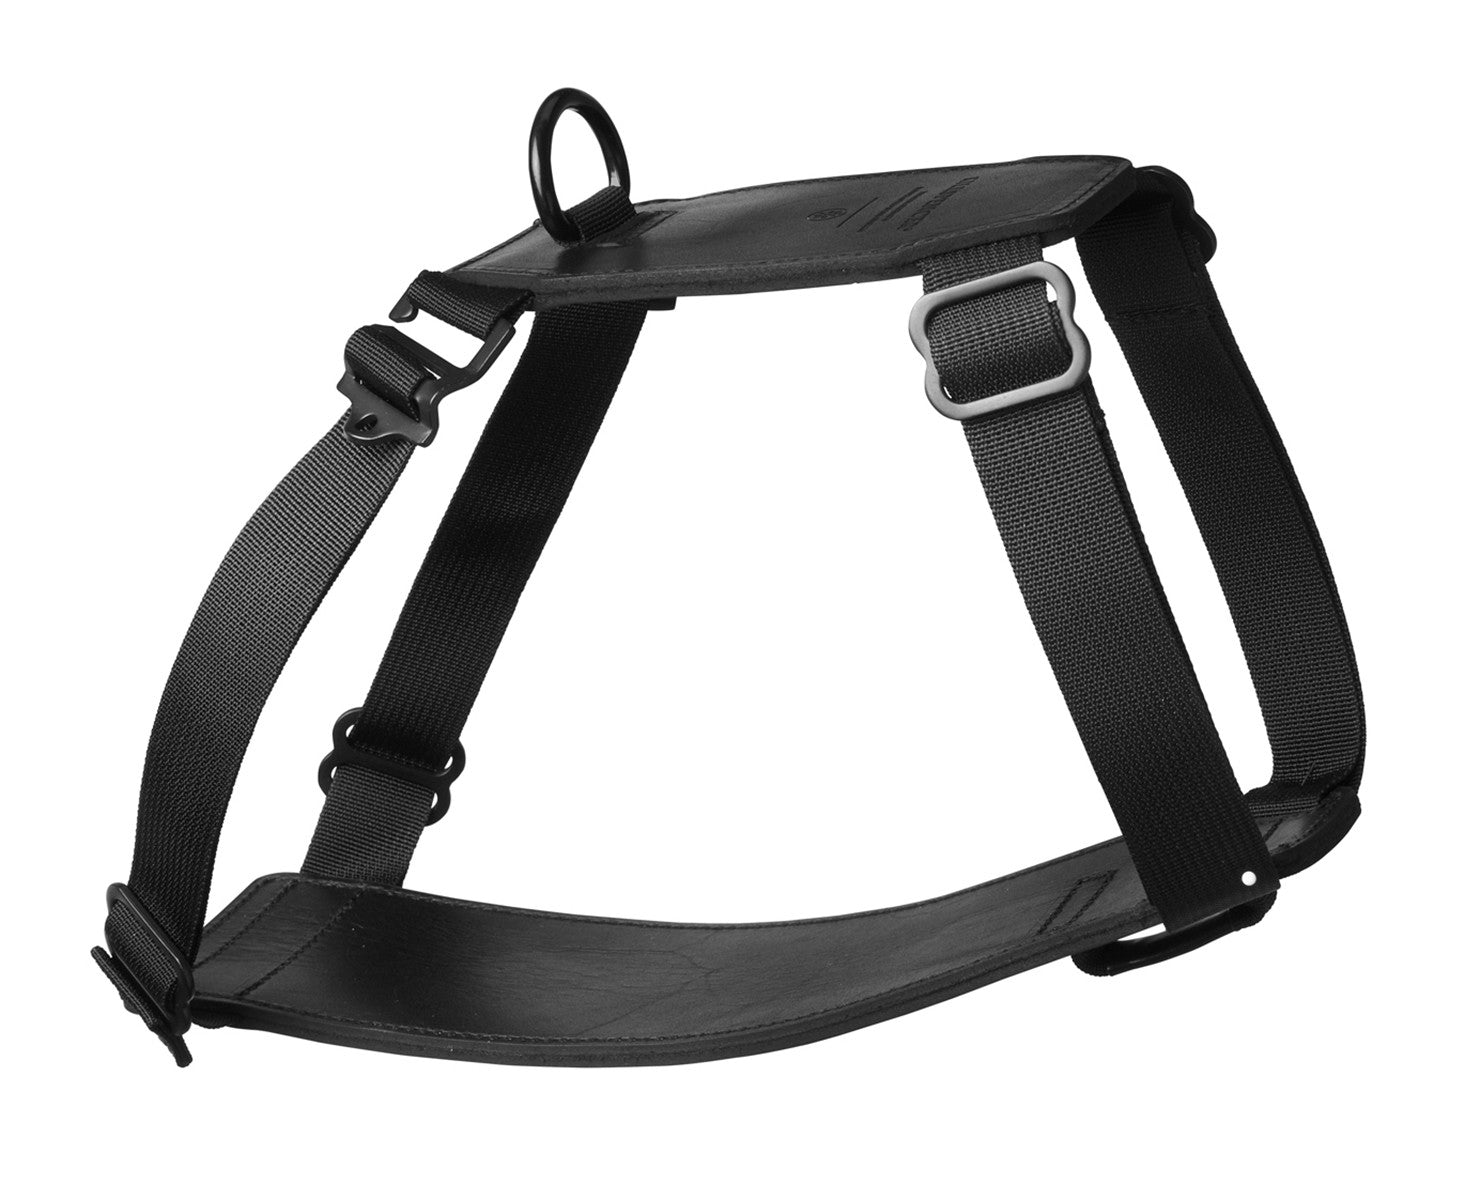 DOG HARNESS | KILLSPENCER® - Black Bullhide Leather